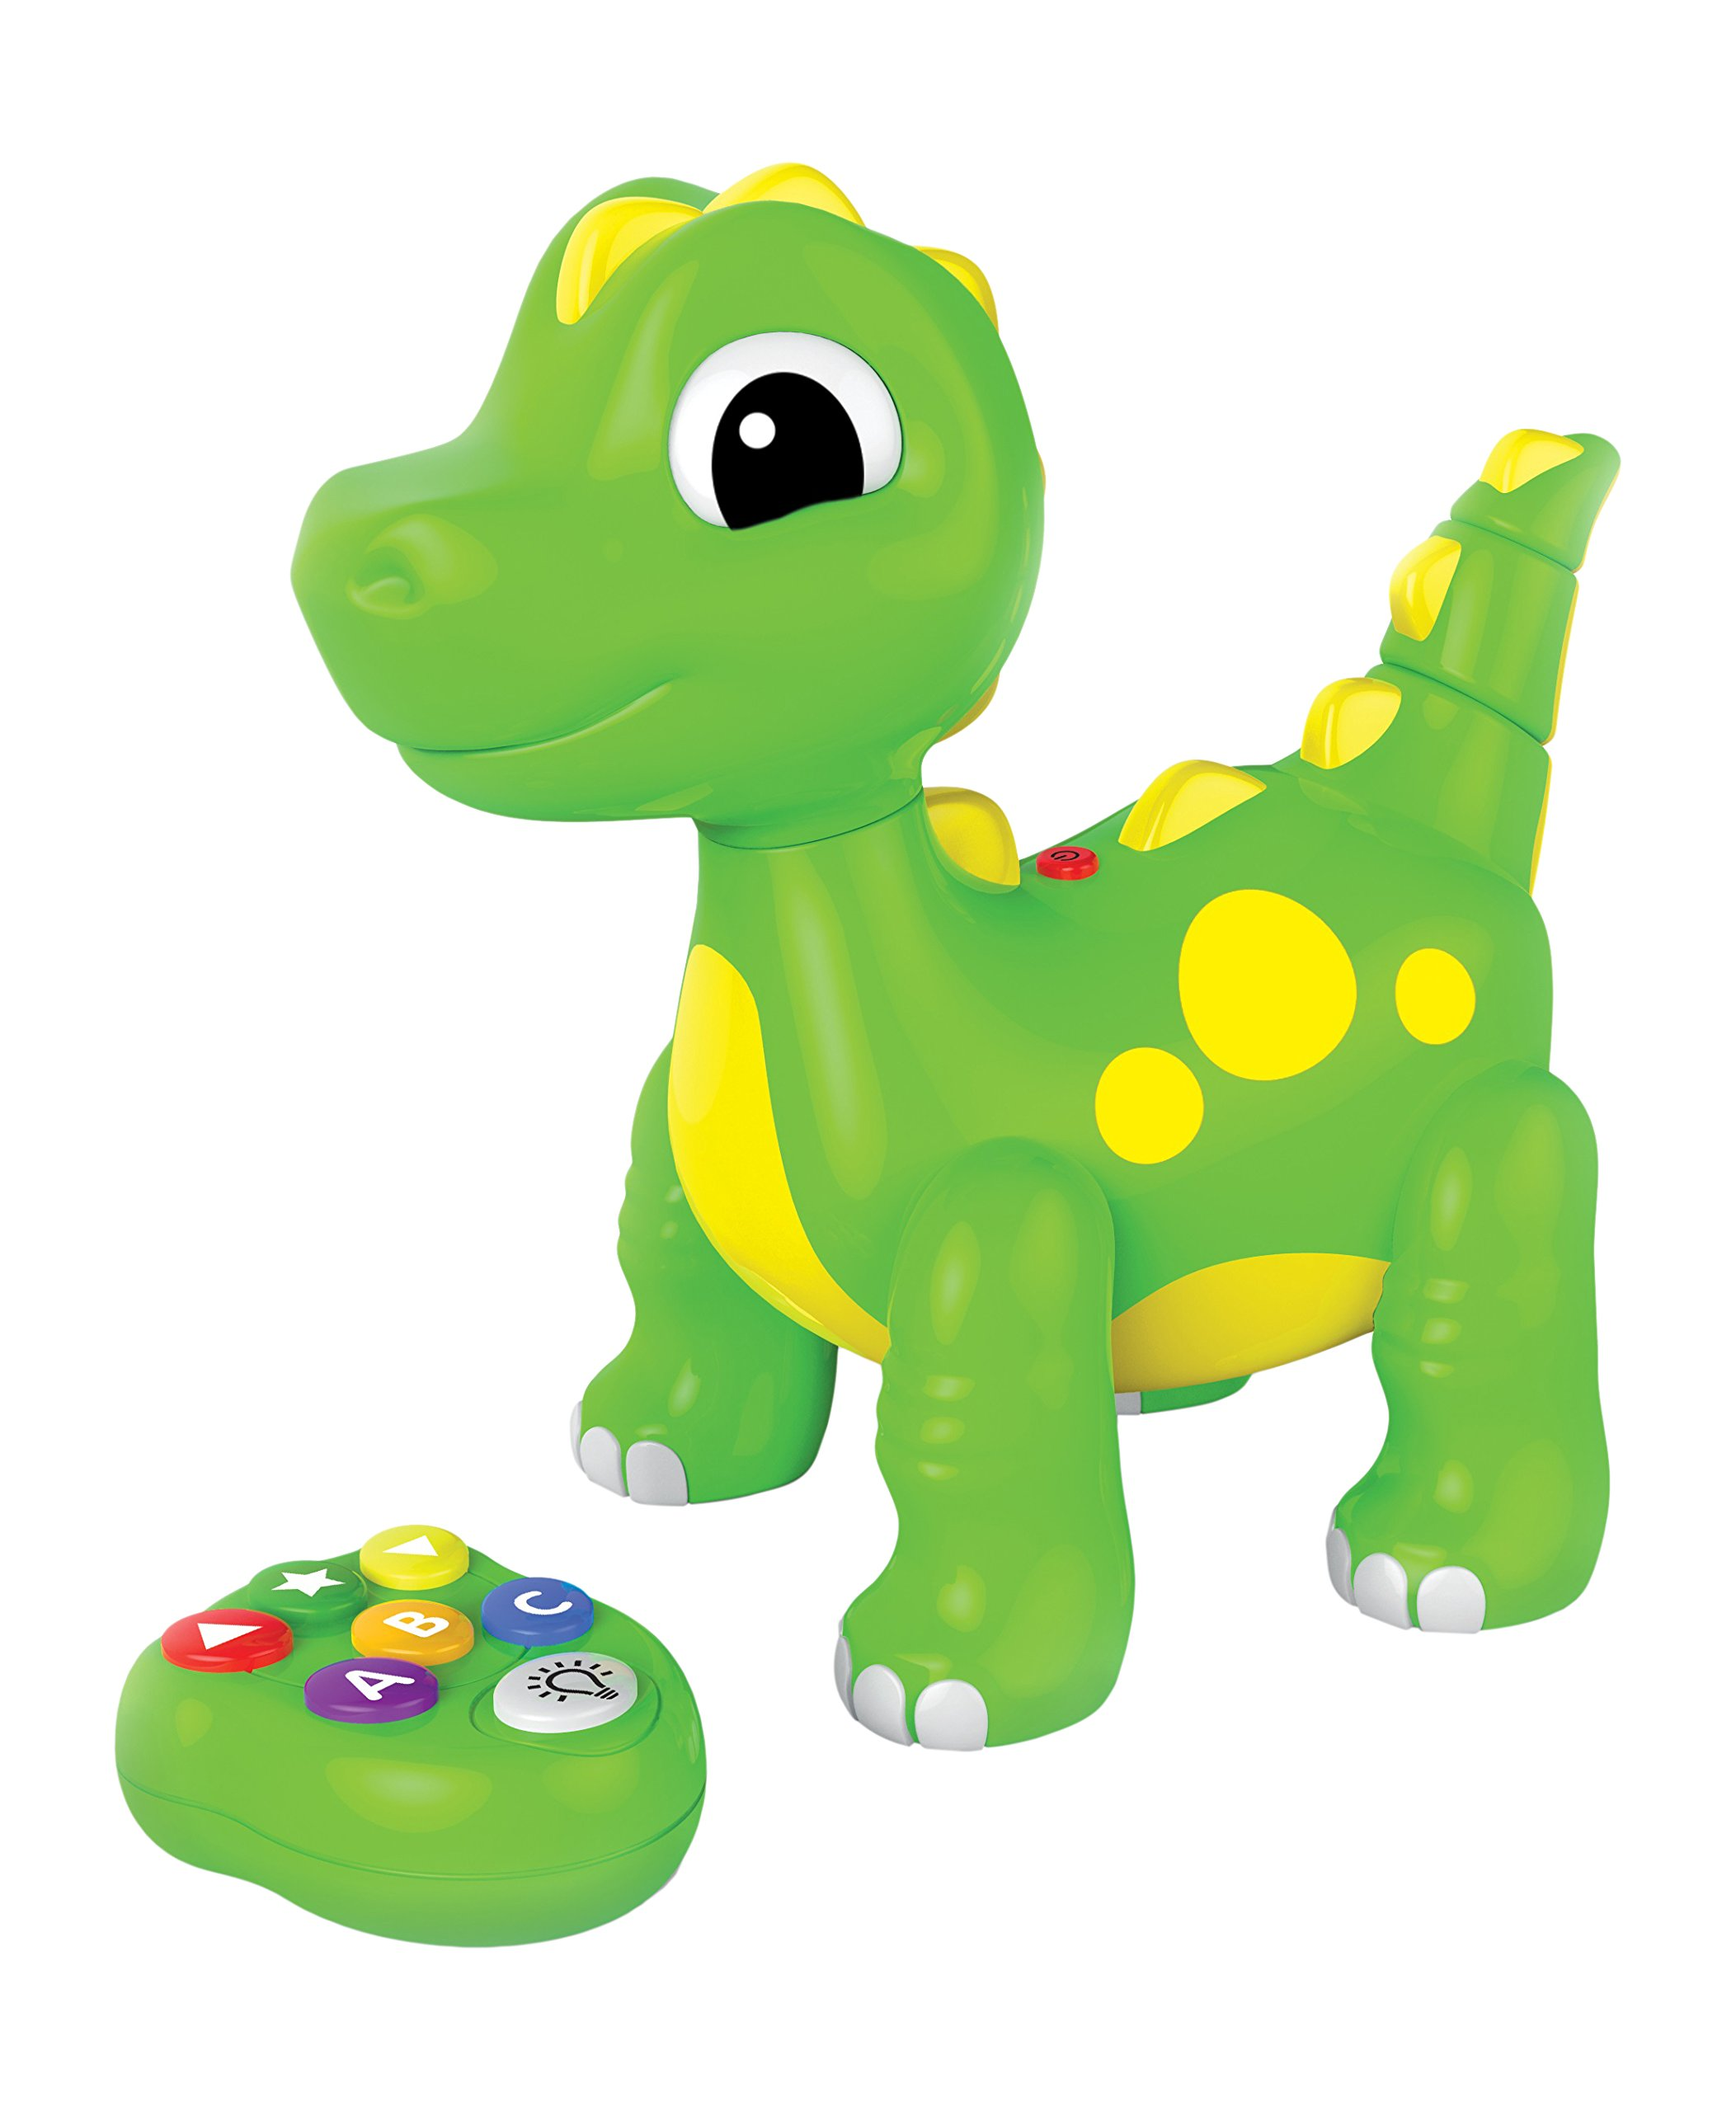 The Learning Journey Remote Control ABC Dancing Dino by The Learning Journey (Image #1)